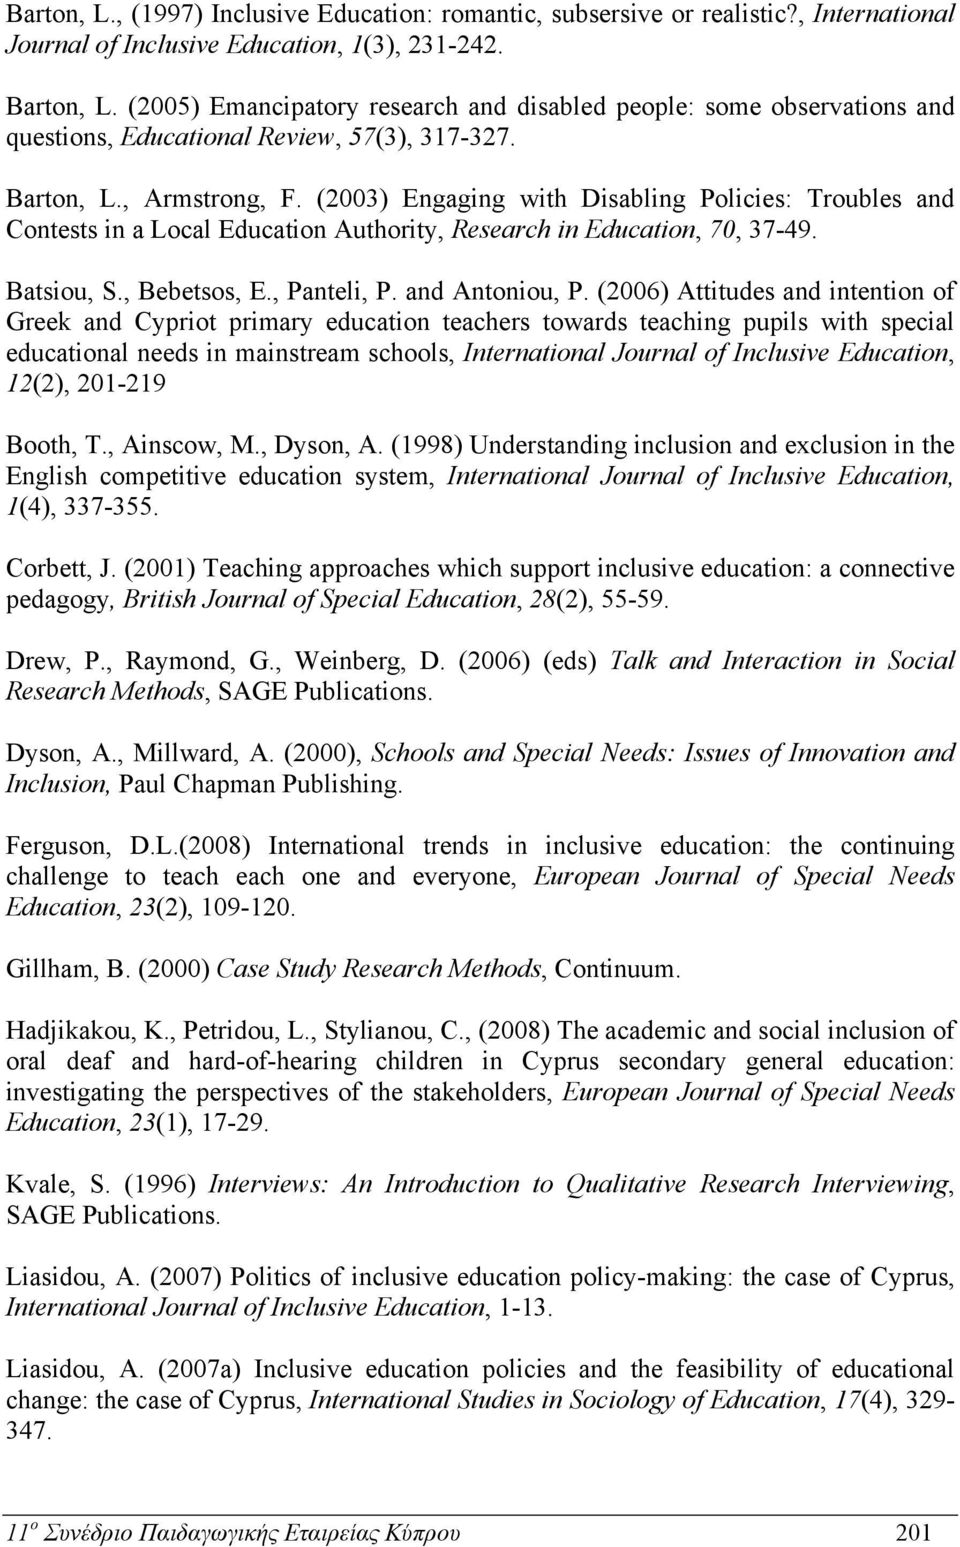 (2003) Engaging with Disabling Policies: Troubles and Contests in a Local Education Authority, Research in Education, 70, 37-49. Batsiou, S., Bebetsos, E., Panteli, P. and Antoniou, P.